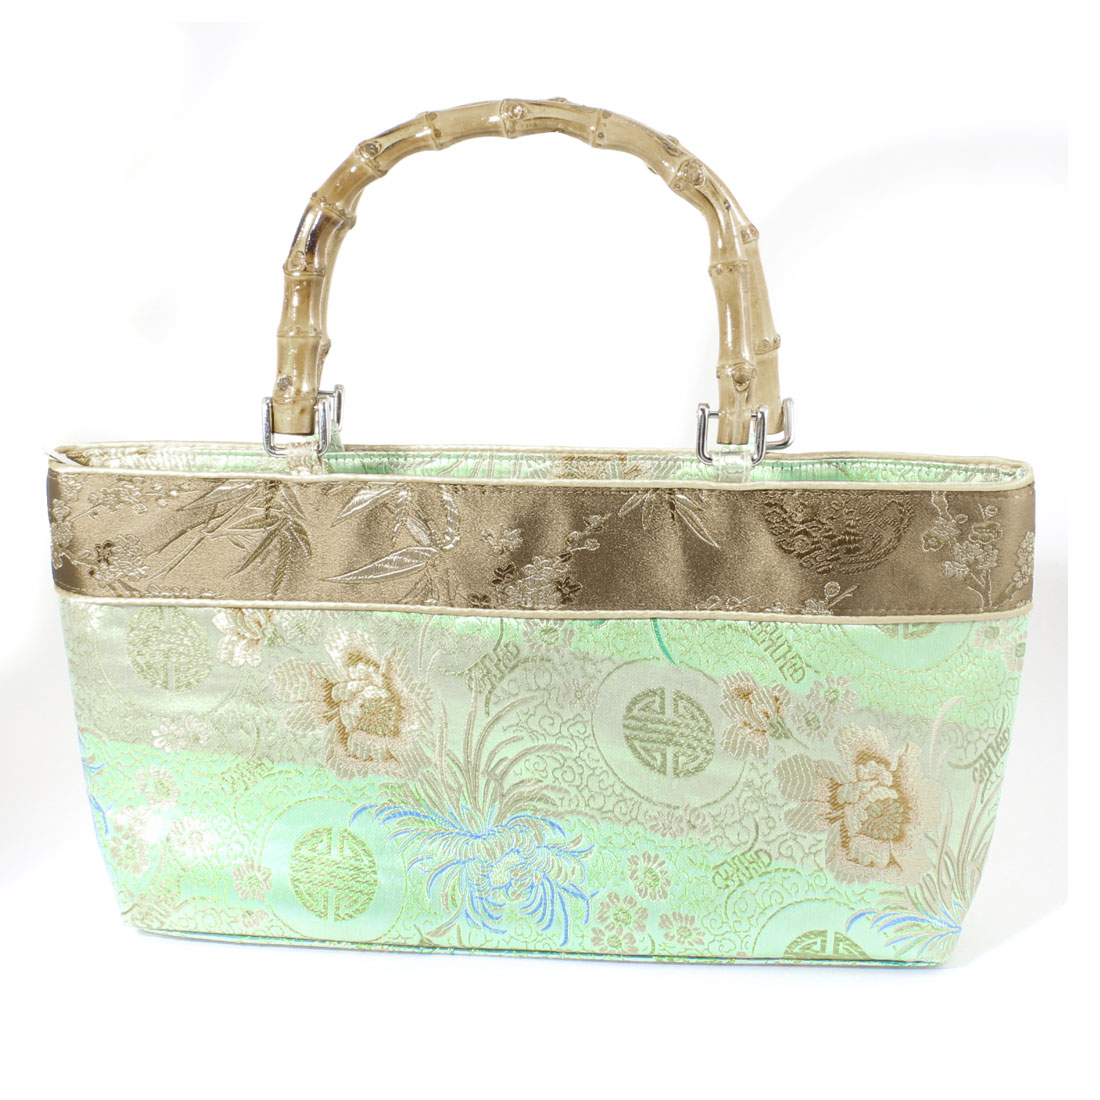 Bamboo Handle Embroider Chrysanthemum Printed Handbag Elegant Green for Women